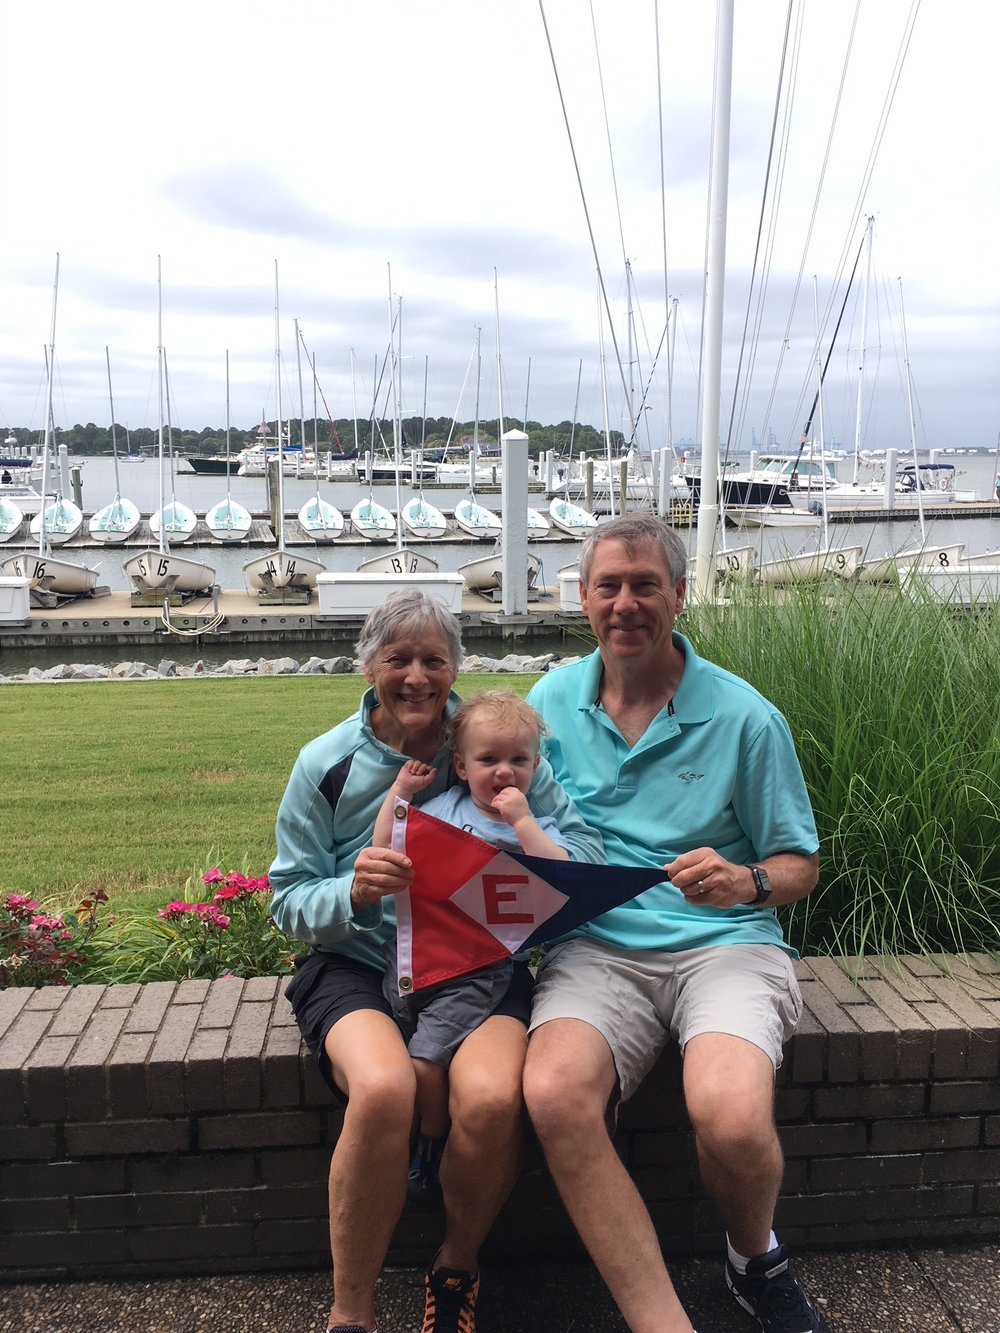 Vicky and Bill Boyce with grandson Lucas in Virginia Beach, VA.